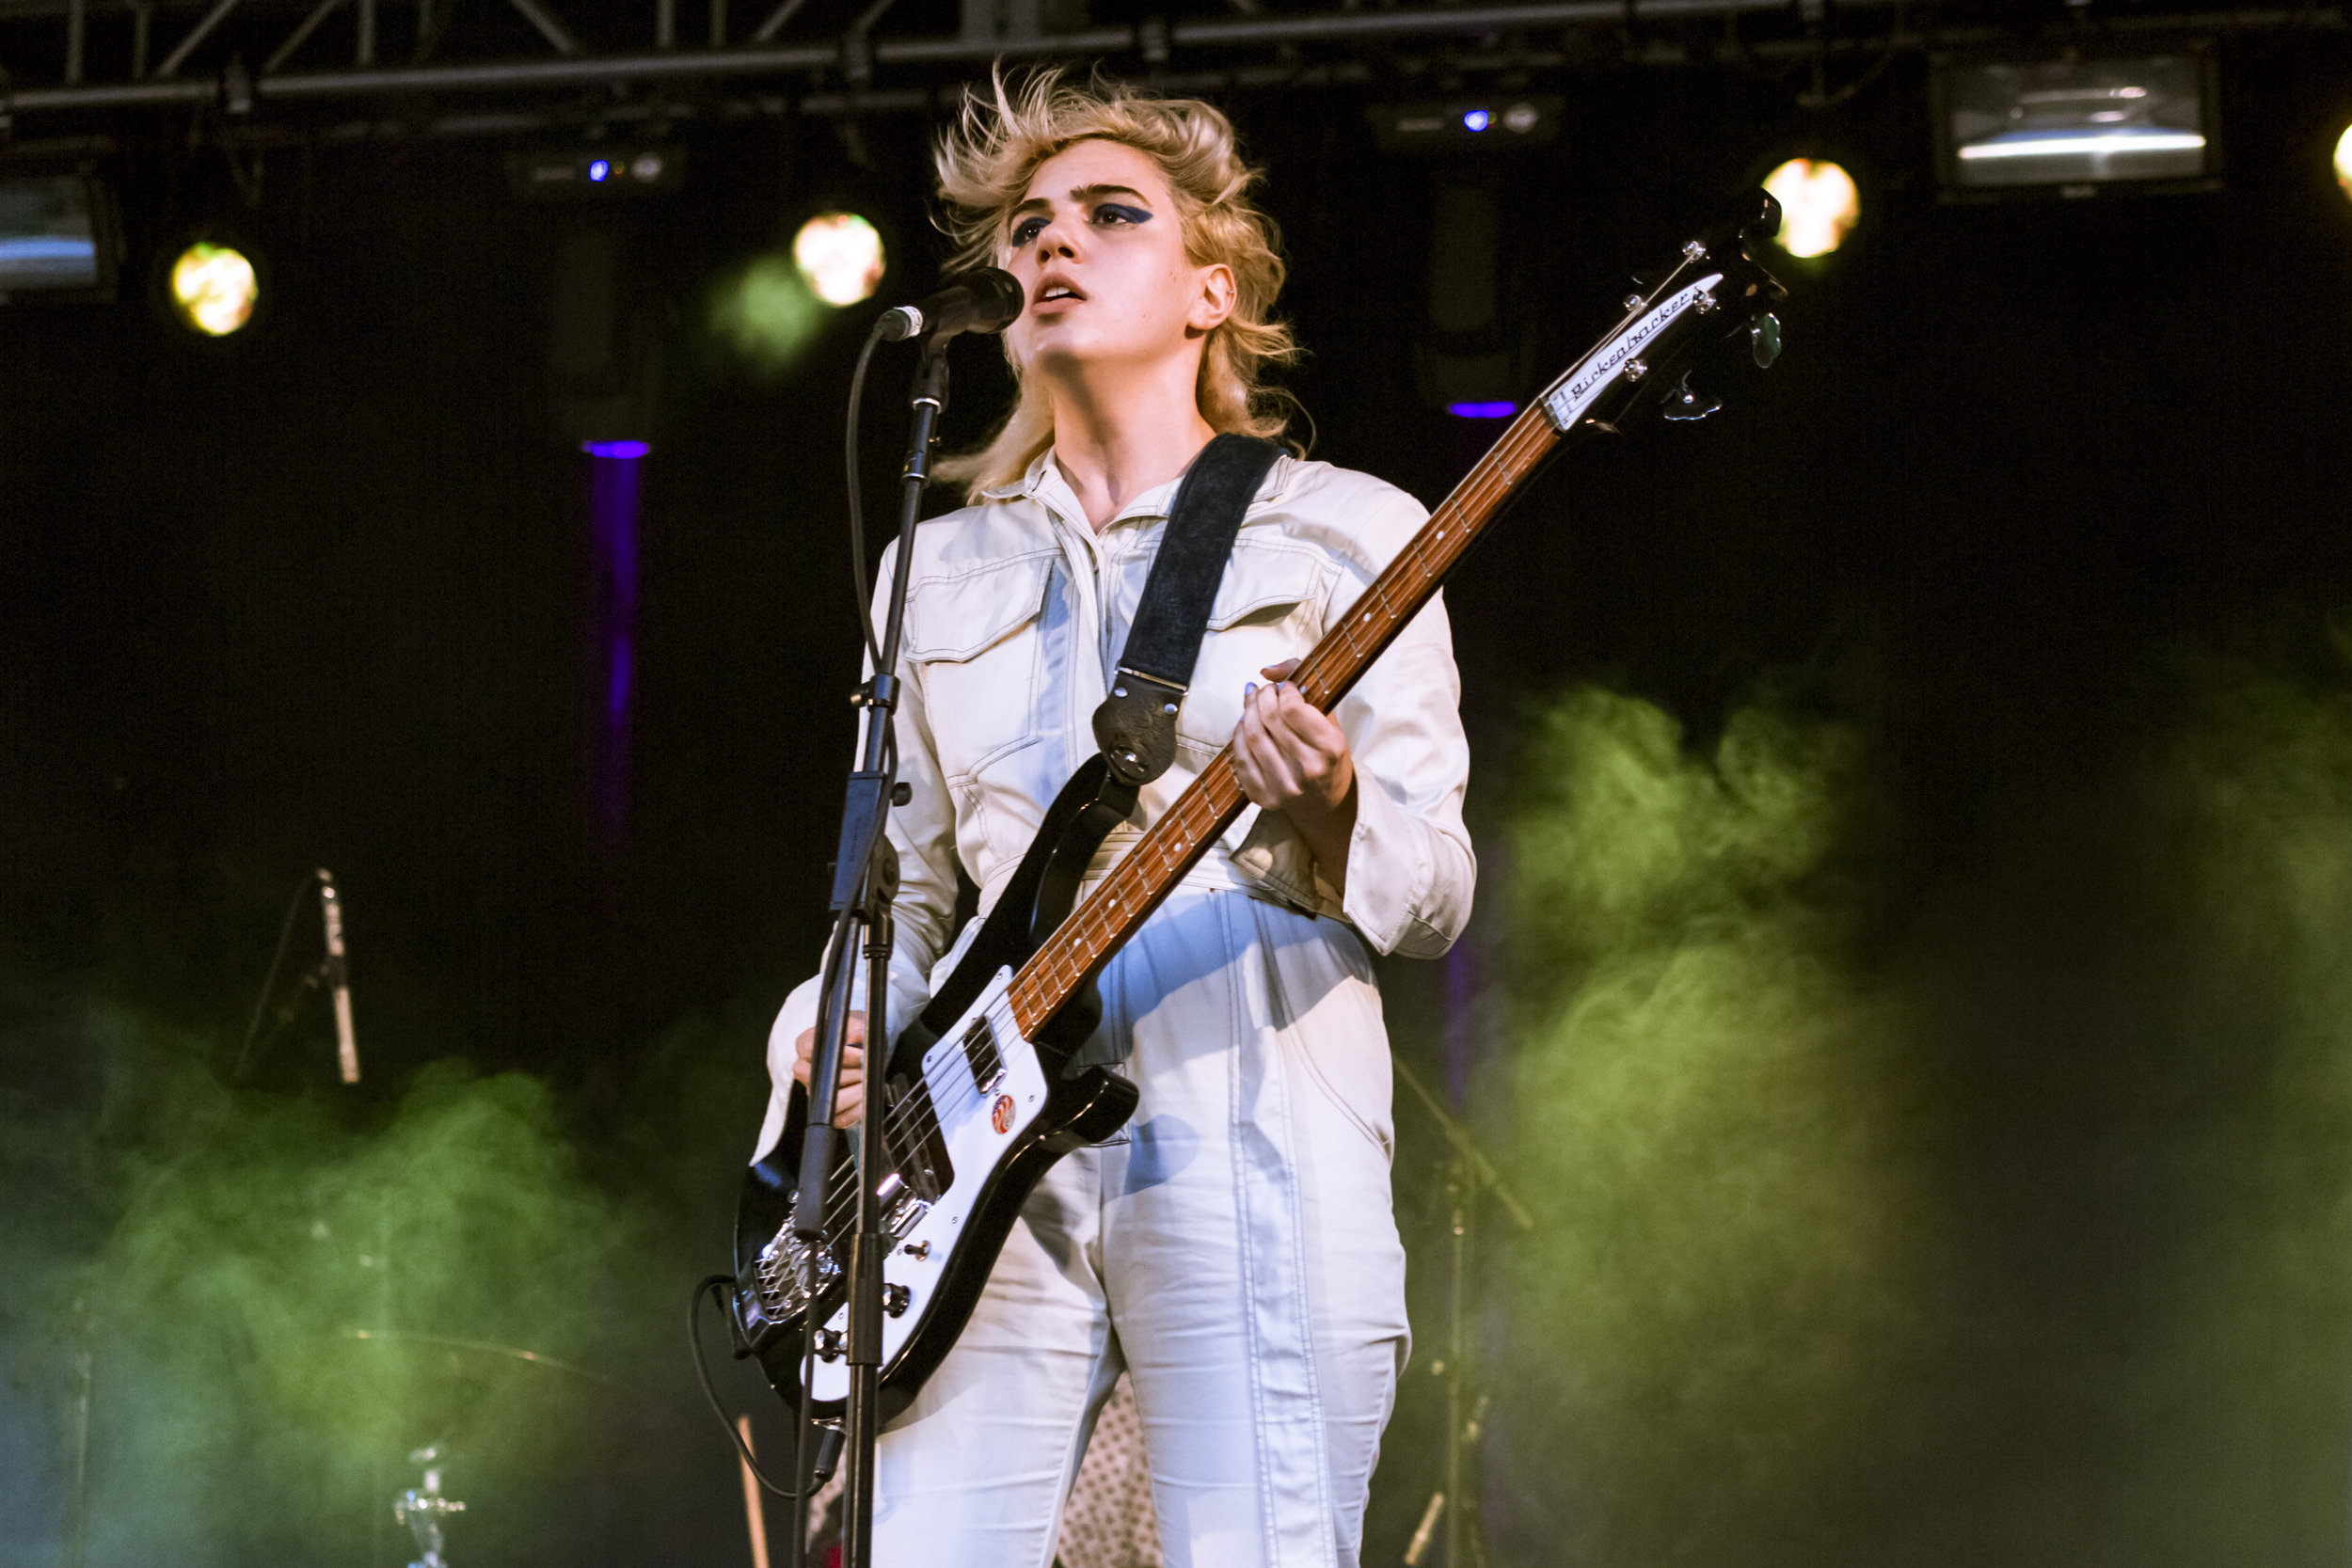 Sunflower Bean & Porches @ Summerstage NYC, 2018 - After a weekend of thunderstorms – some of many that can be expected during a New York summertime – the rescheduled free show featuring Sunflower Bean and Porches (casualty Crumb, who were on the original bill) raged at the East River Park amphitheatre in the Lower East Side.